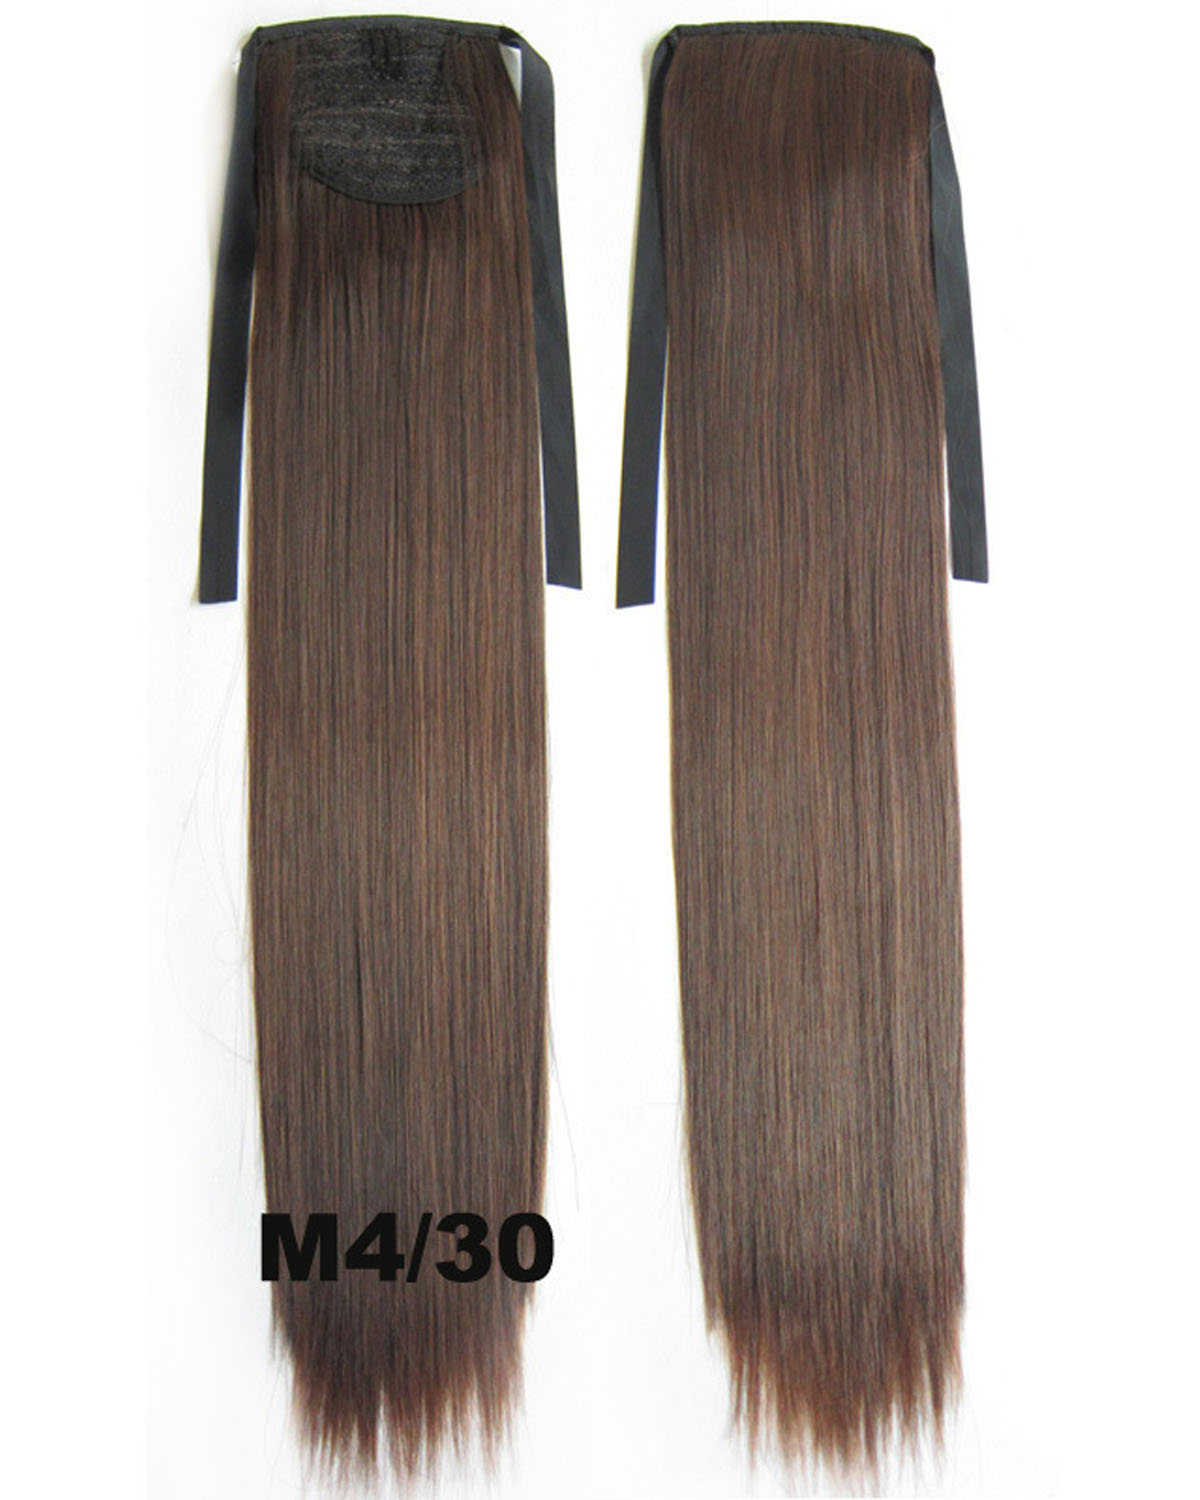 22 Inch Lady Fashional Straight and Long Lace/Ribbon Synthetic Hair Ponytail  M4/30